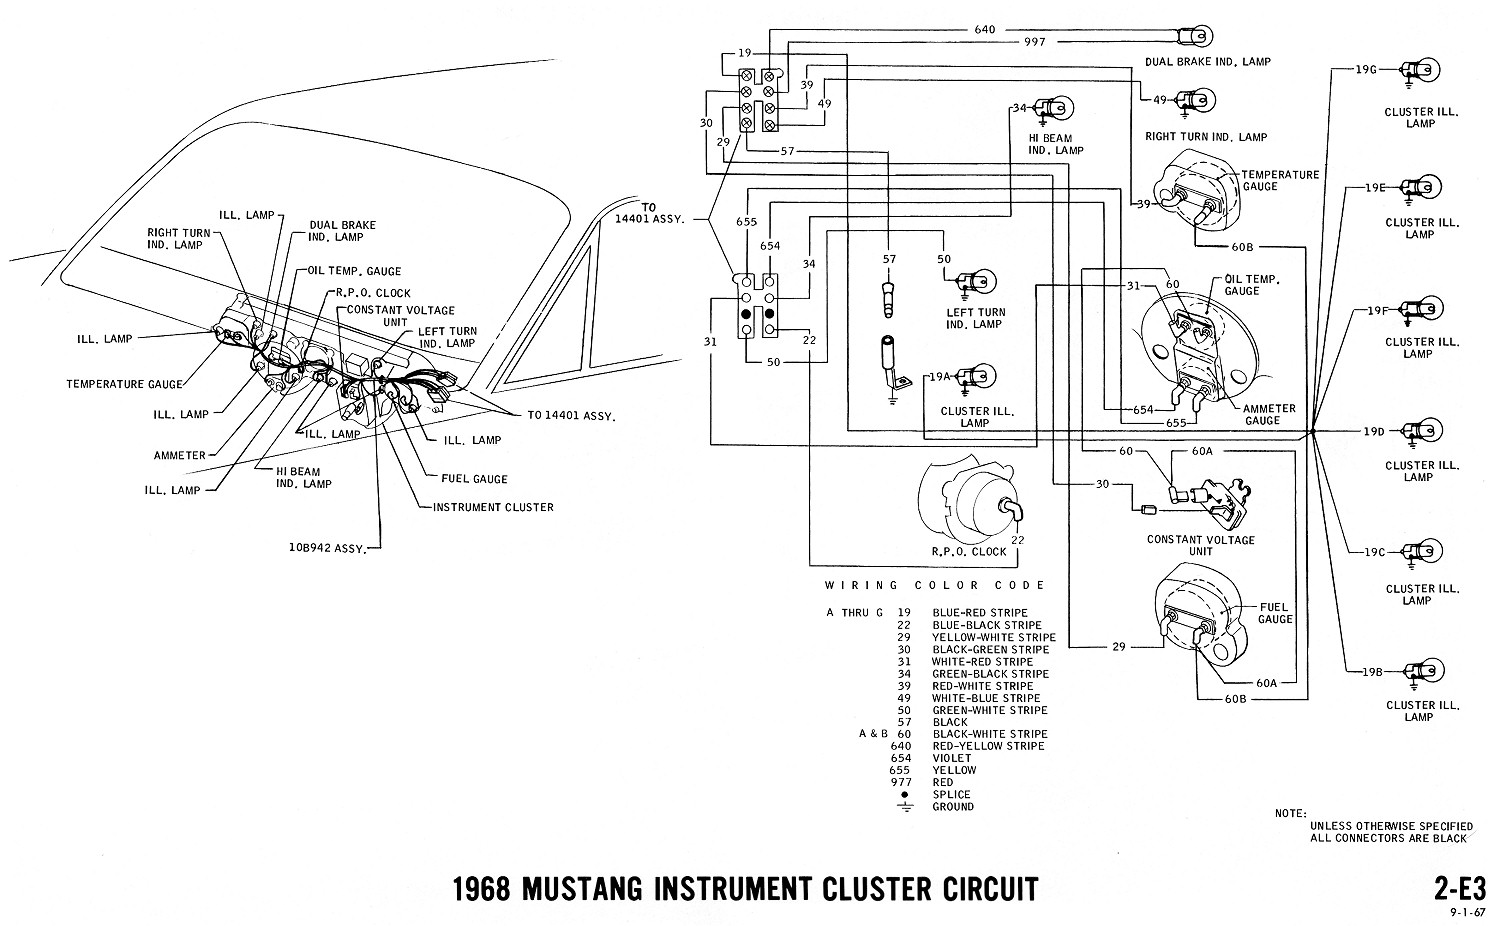 79 Mustang Alternator Wiring Harness Library Vw Diagram Symbols Automotive 1972 Wire Schematic Auto Electrical Rh Harvard Edu Co Uk Sistemagroup Me